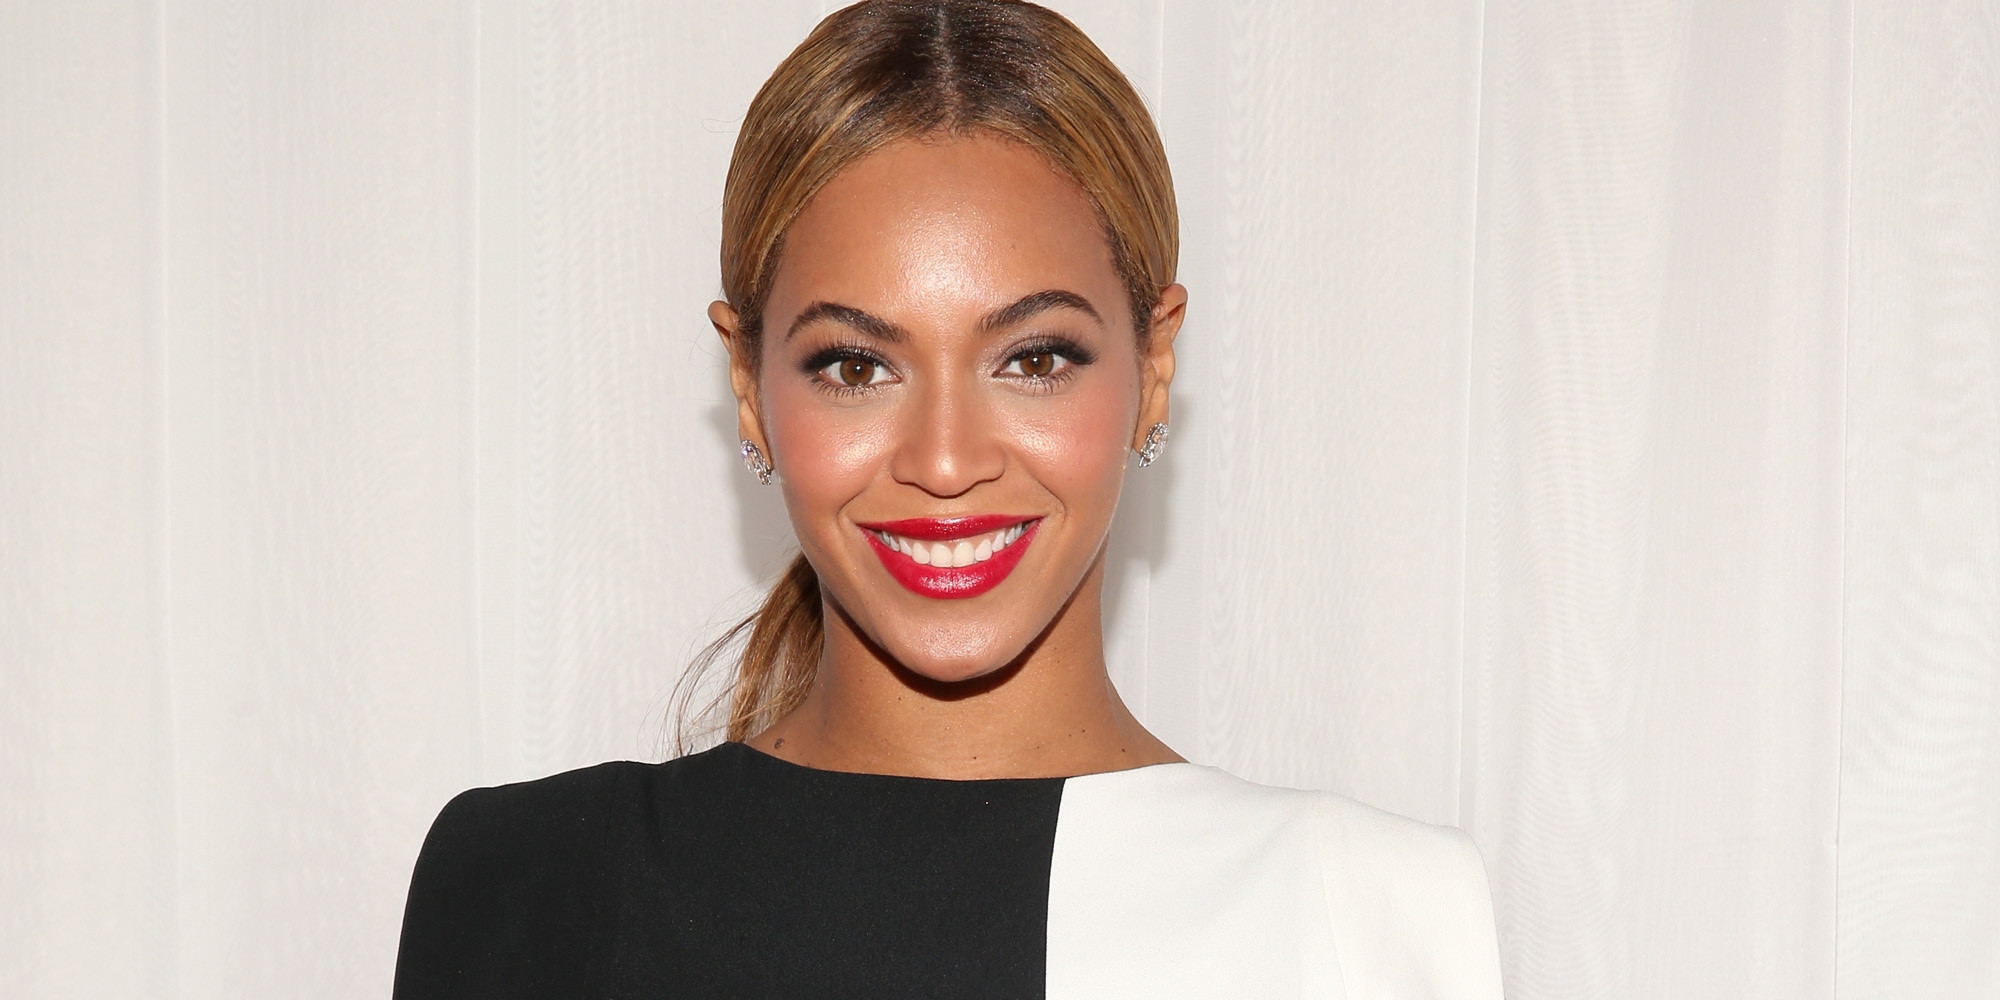 Beyonce Has Quietly Given $7 Million To Homeless In Hometown Of